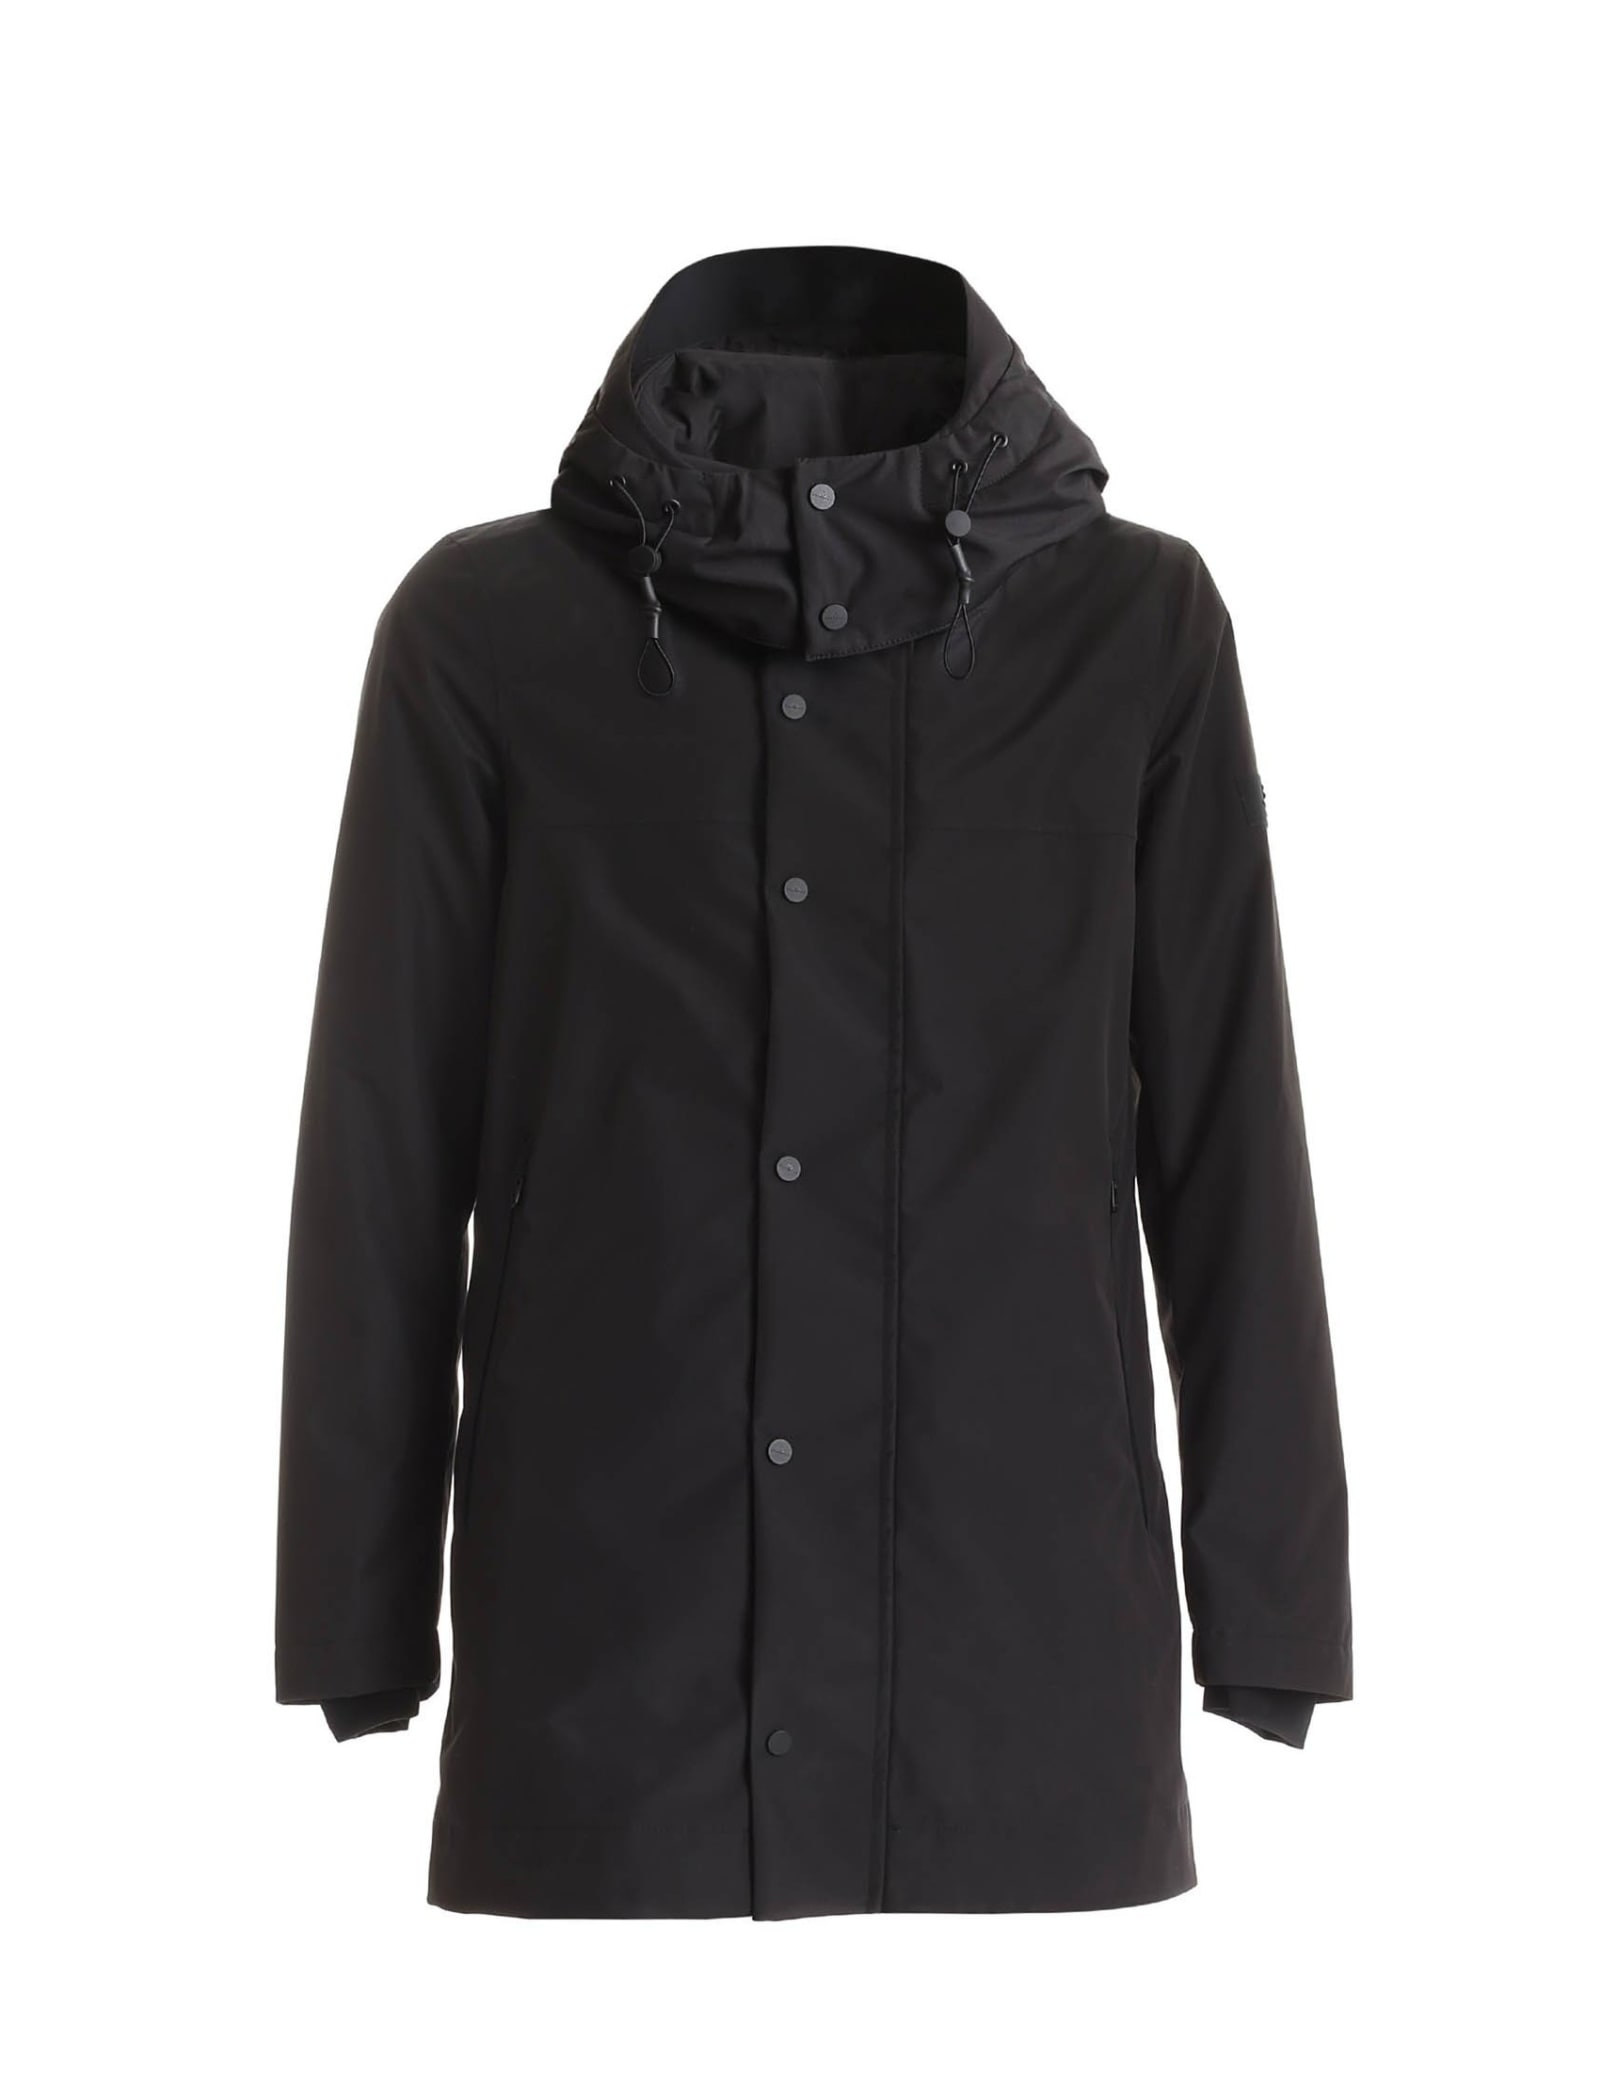 Rainproof and windproof trench coat black colour semi-gloss fabric with breathable membrane central hidden zip closure removable hood two large pockets with zip composition 100% polyester padding 100% polyester fit regular